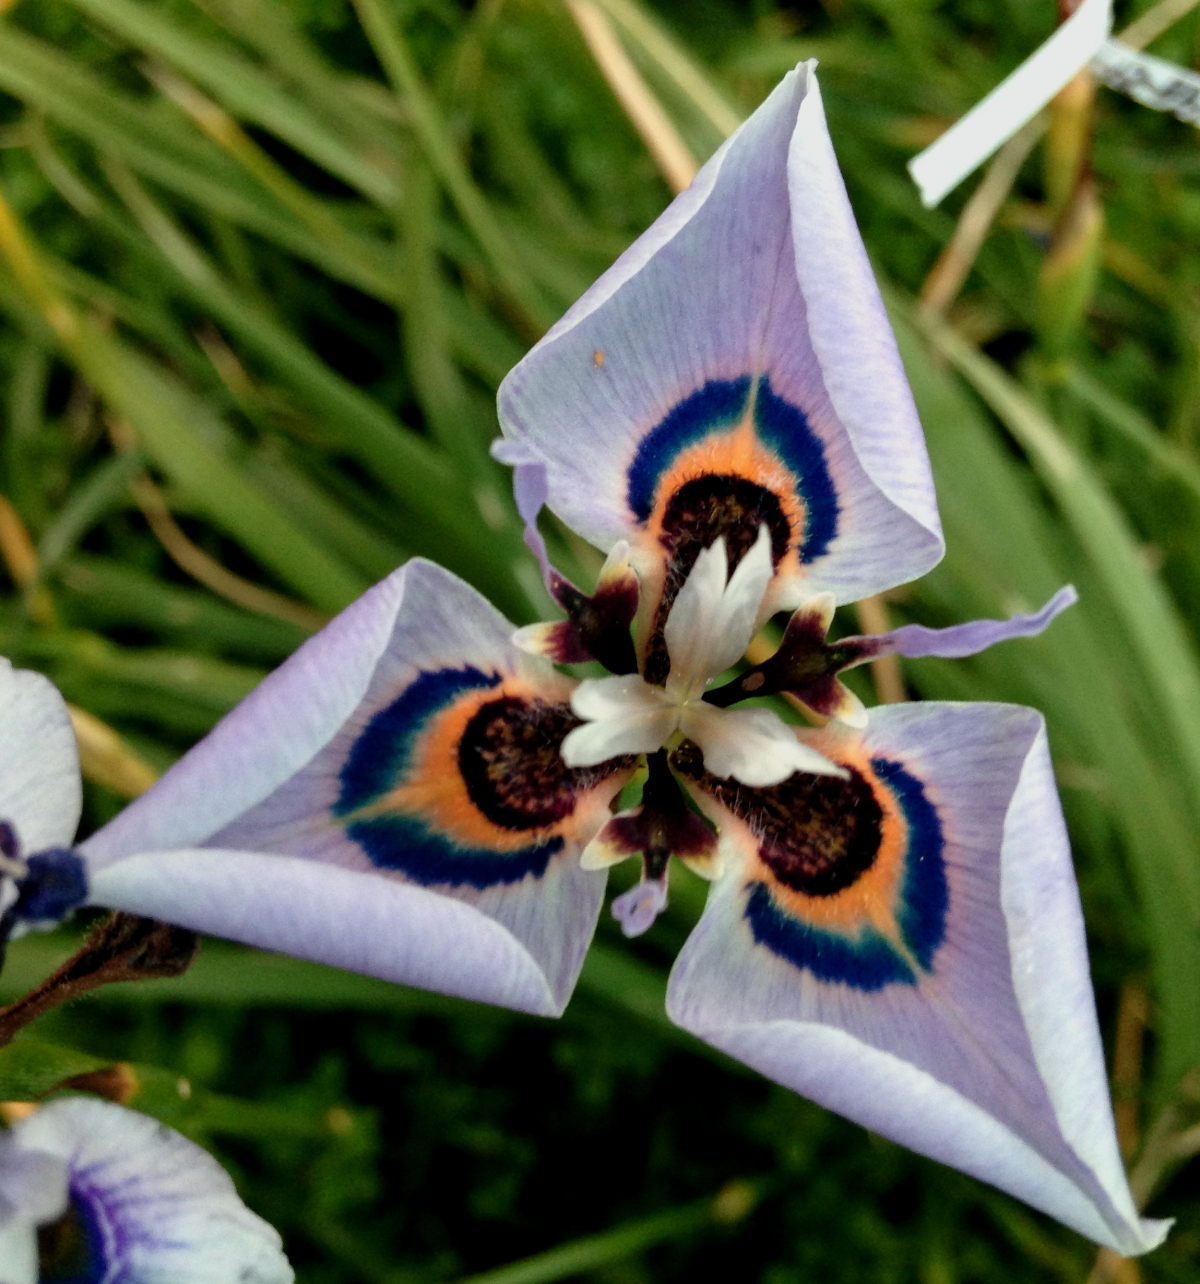 Growing cool plants new moraea hybrids 2017 - Interesting houseplants ...